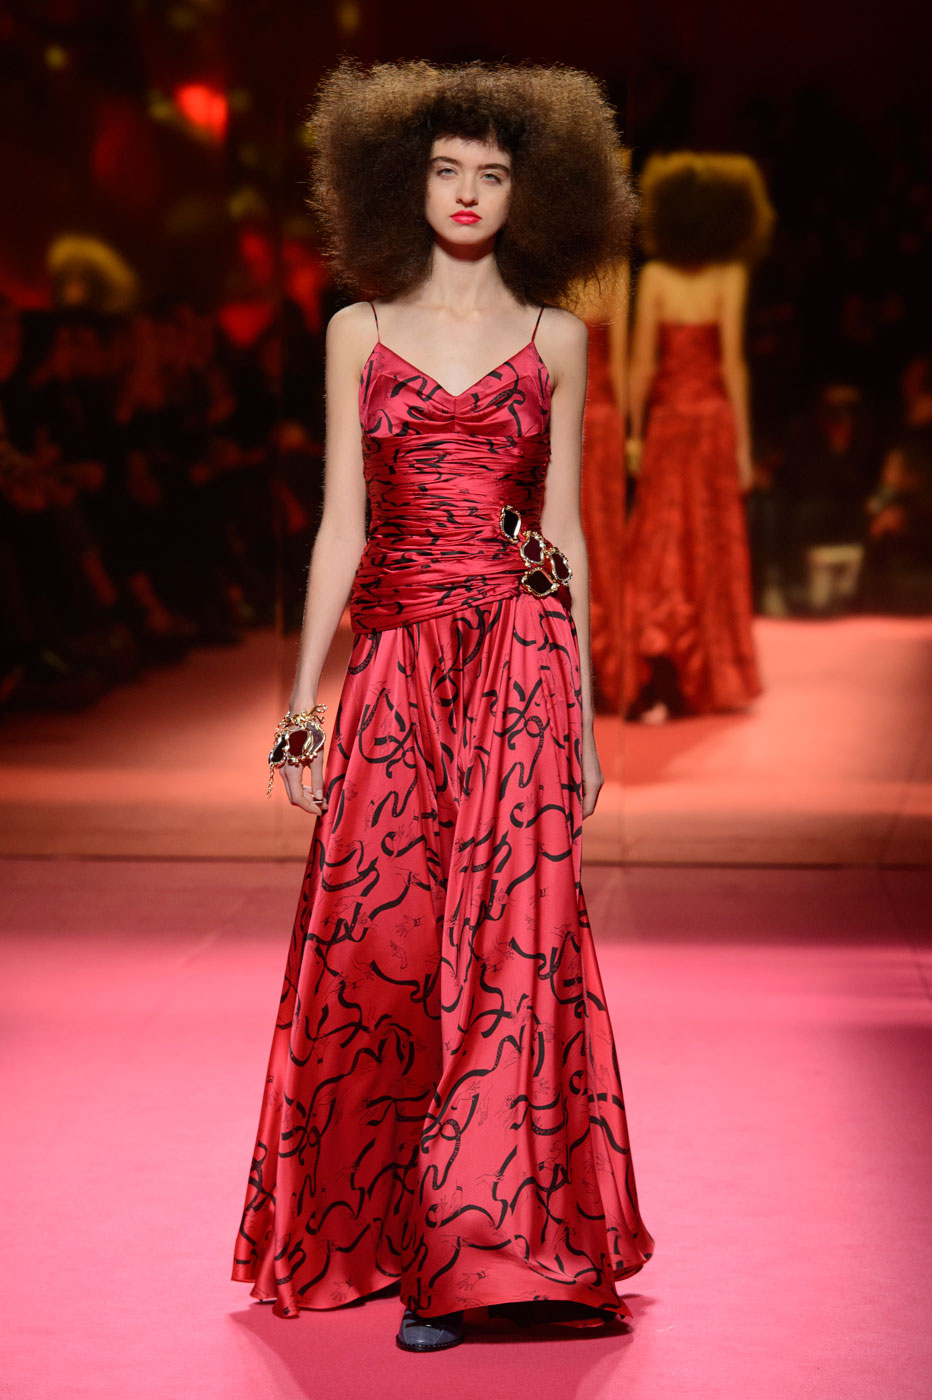 Schiaparelli-fashion-runway-show-haute-couture-paris-spring-summer-2015-the-impression-36